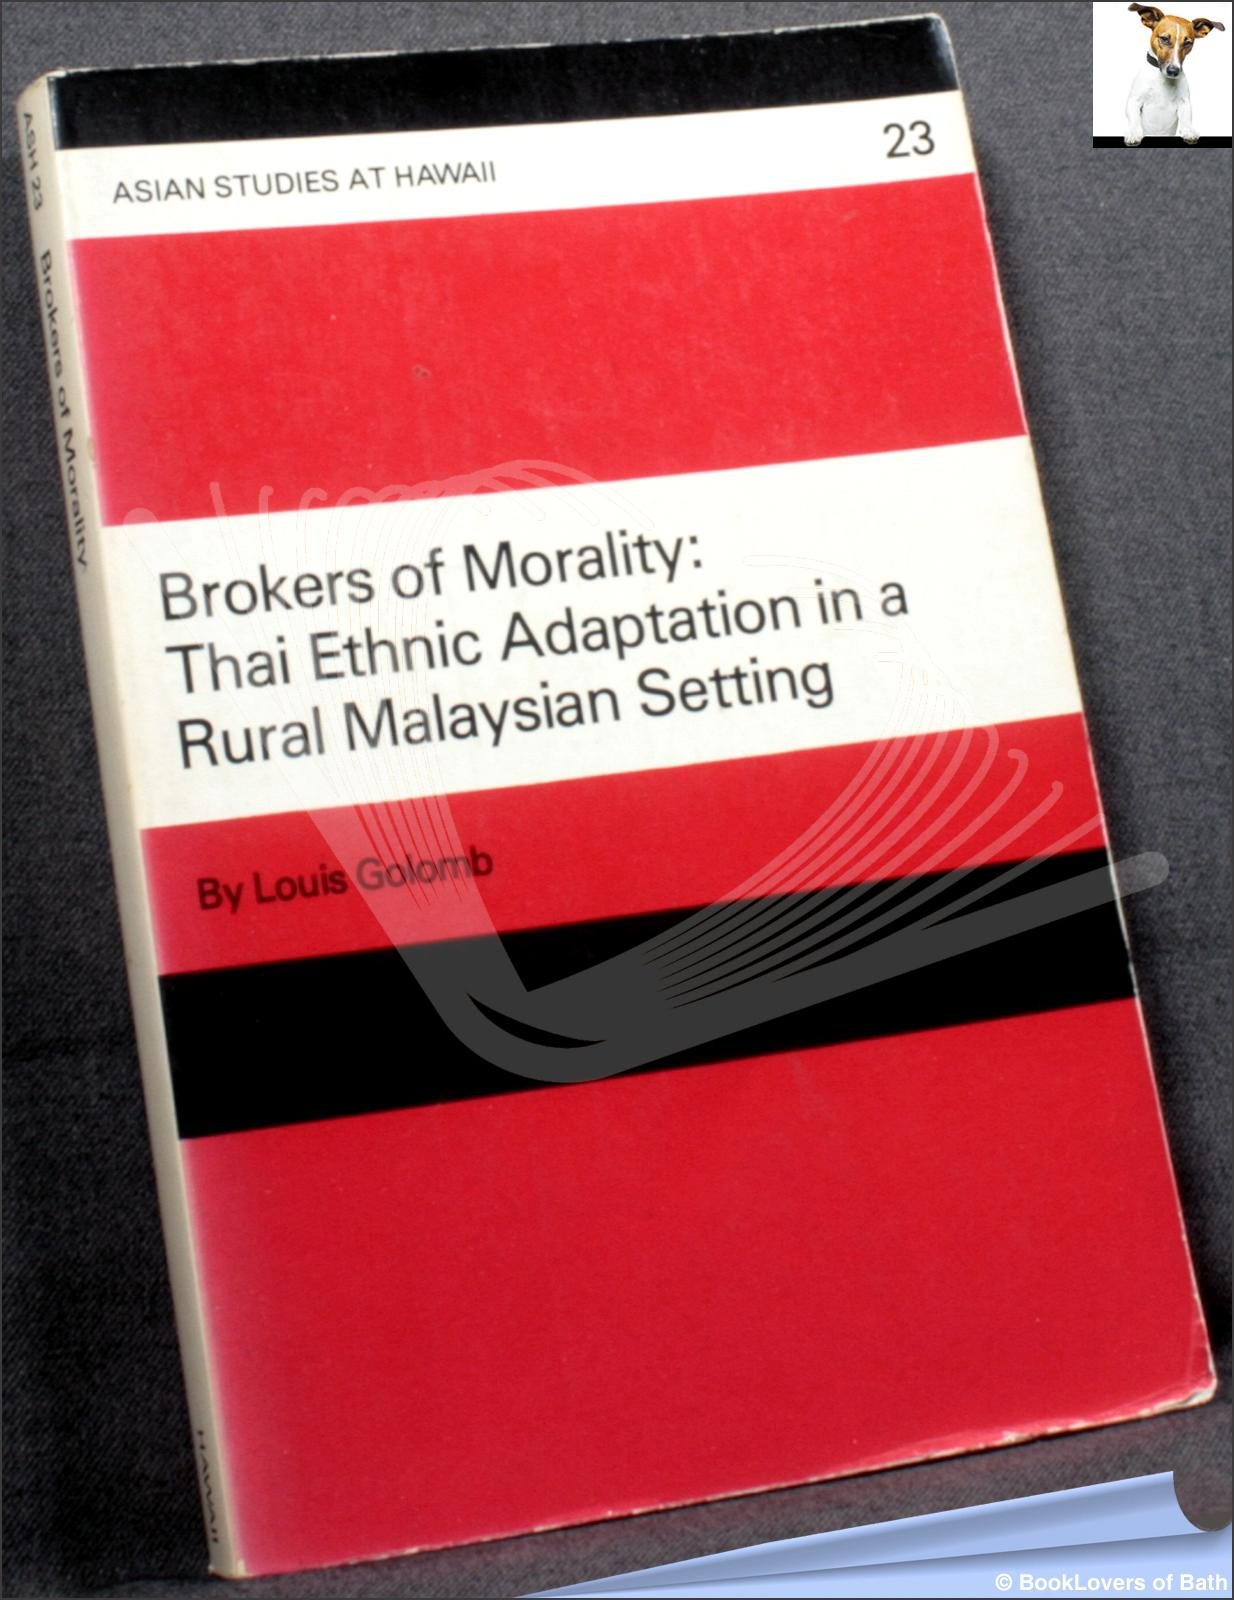 Brokers of Morality: Thai Ethnic Adaptation in a Rural Malaysian Setting - Louis Golomb